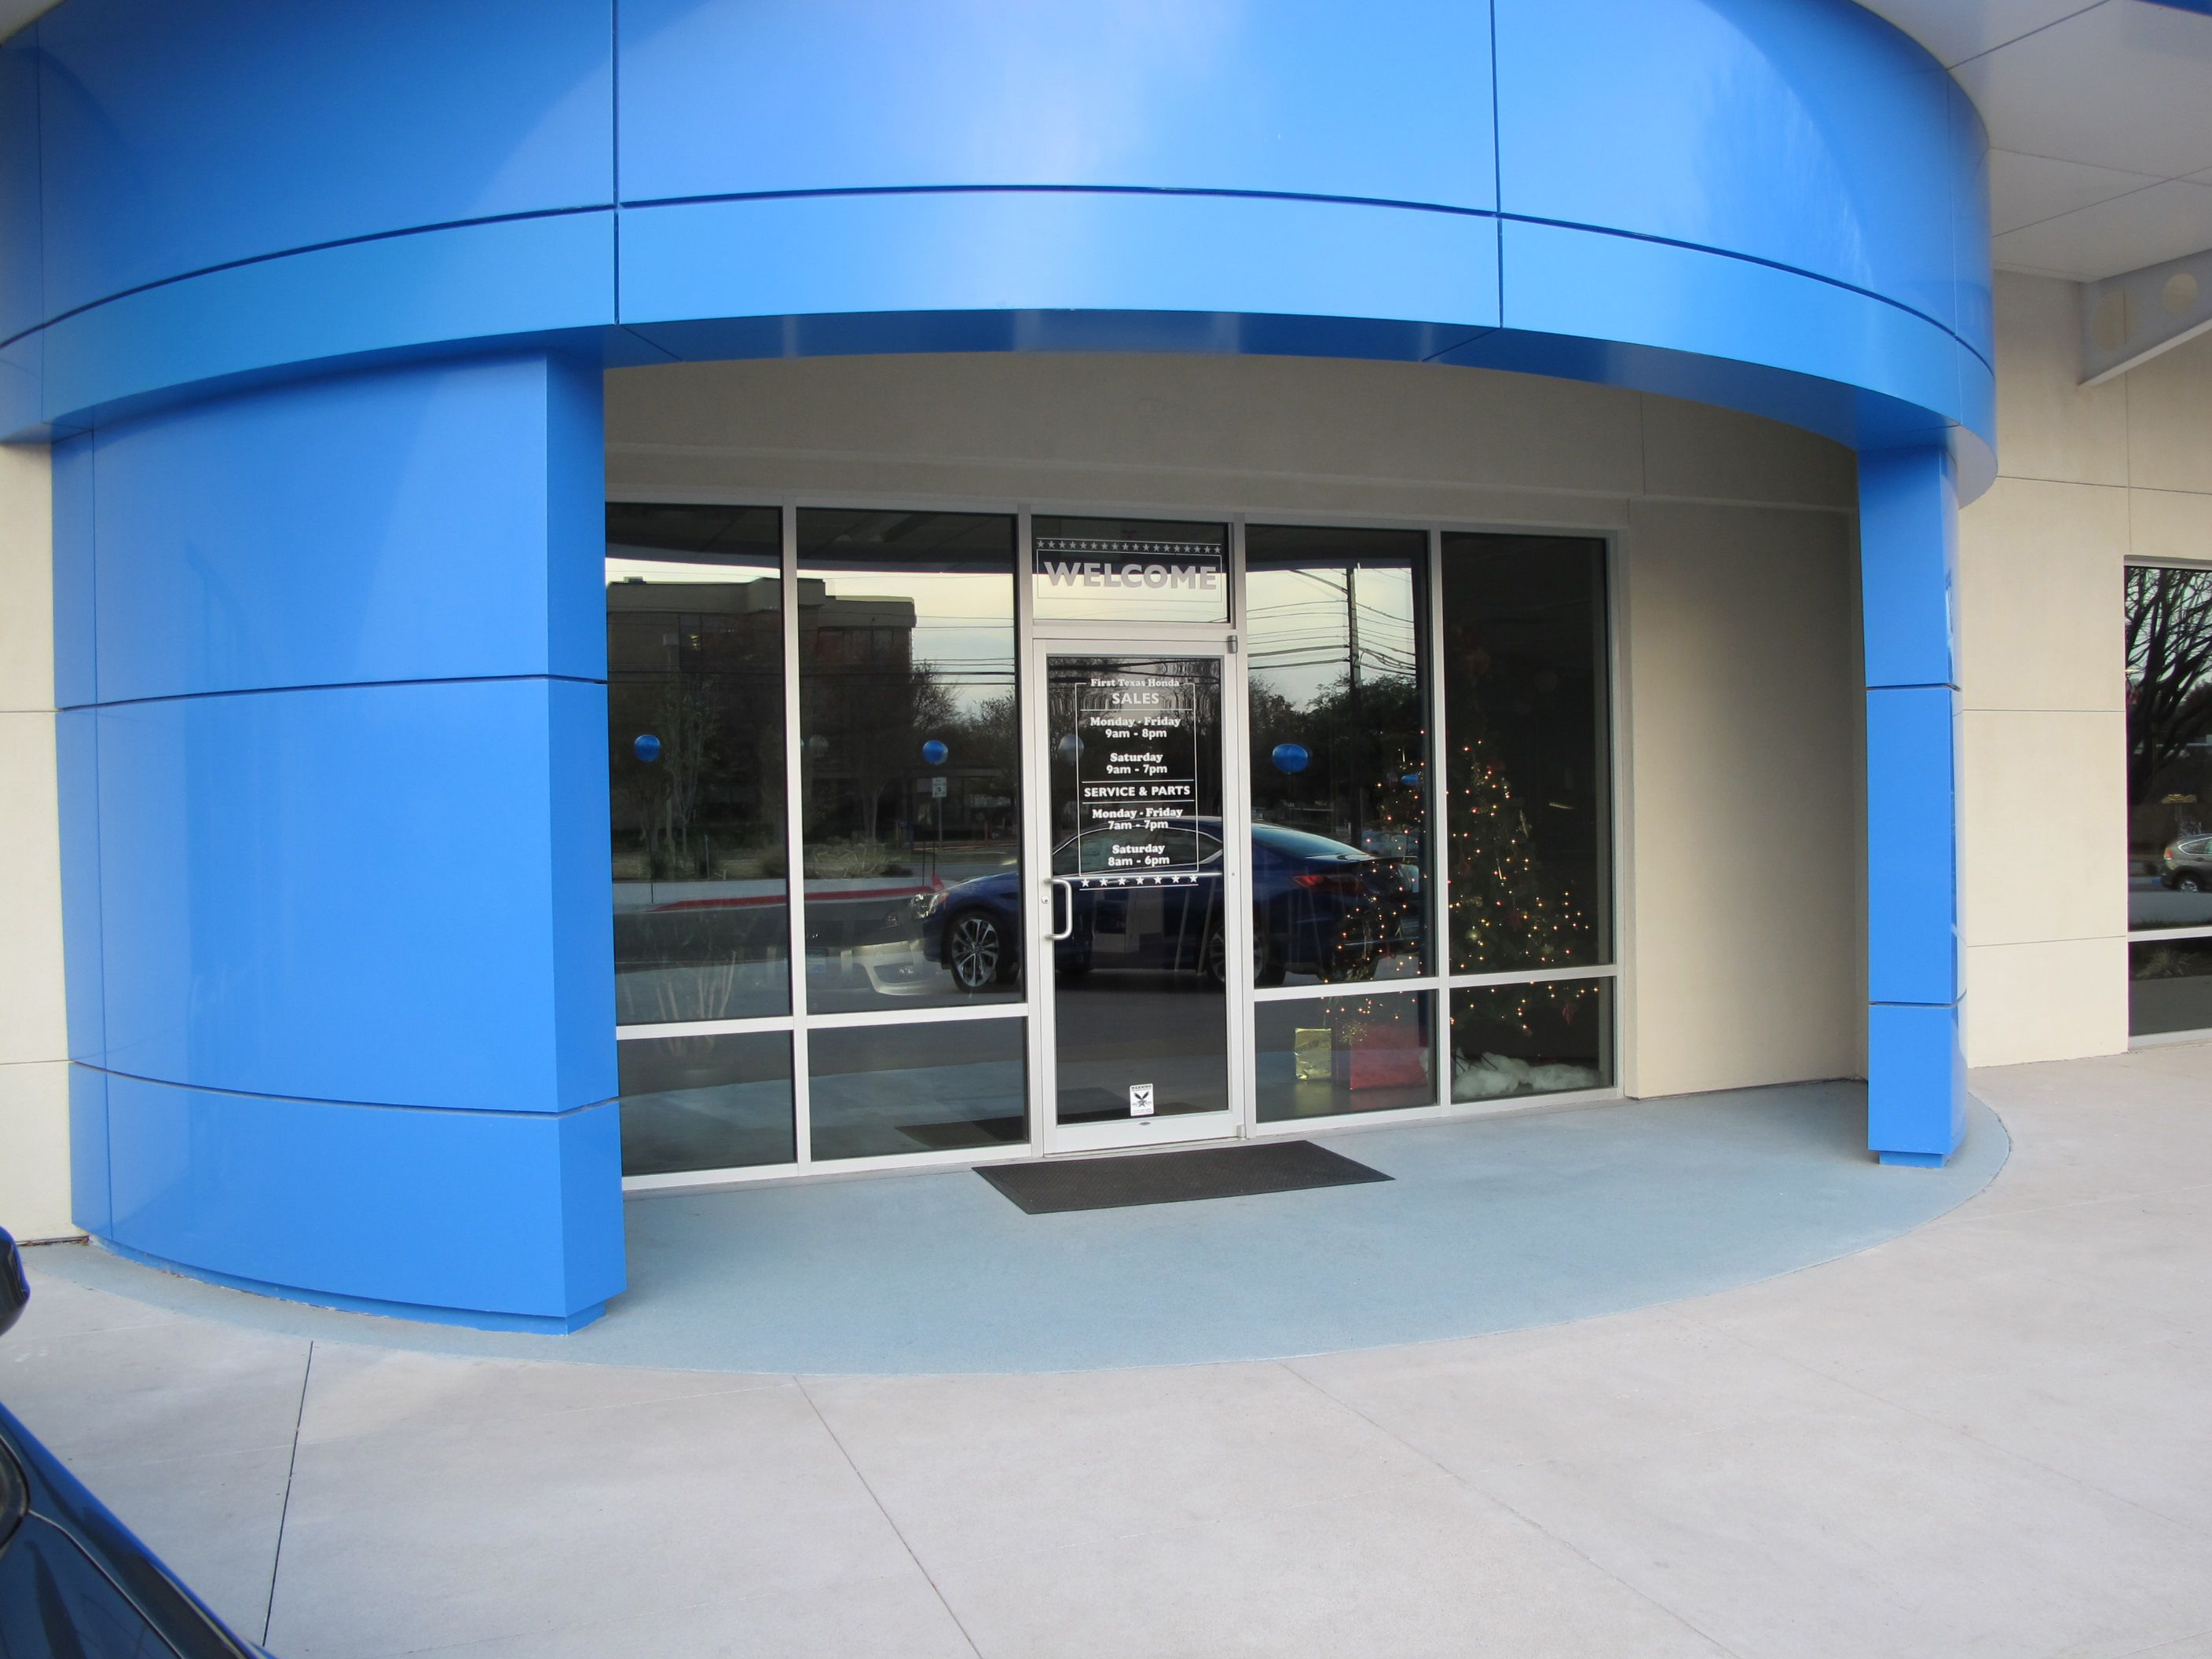 Texas Honda installs Bomanite Broadcast Aggregate Decorative Concrete Topping for Dealership Entrance